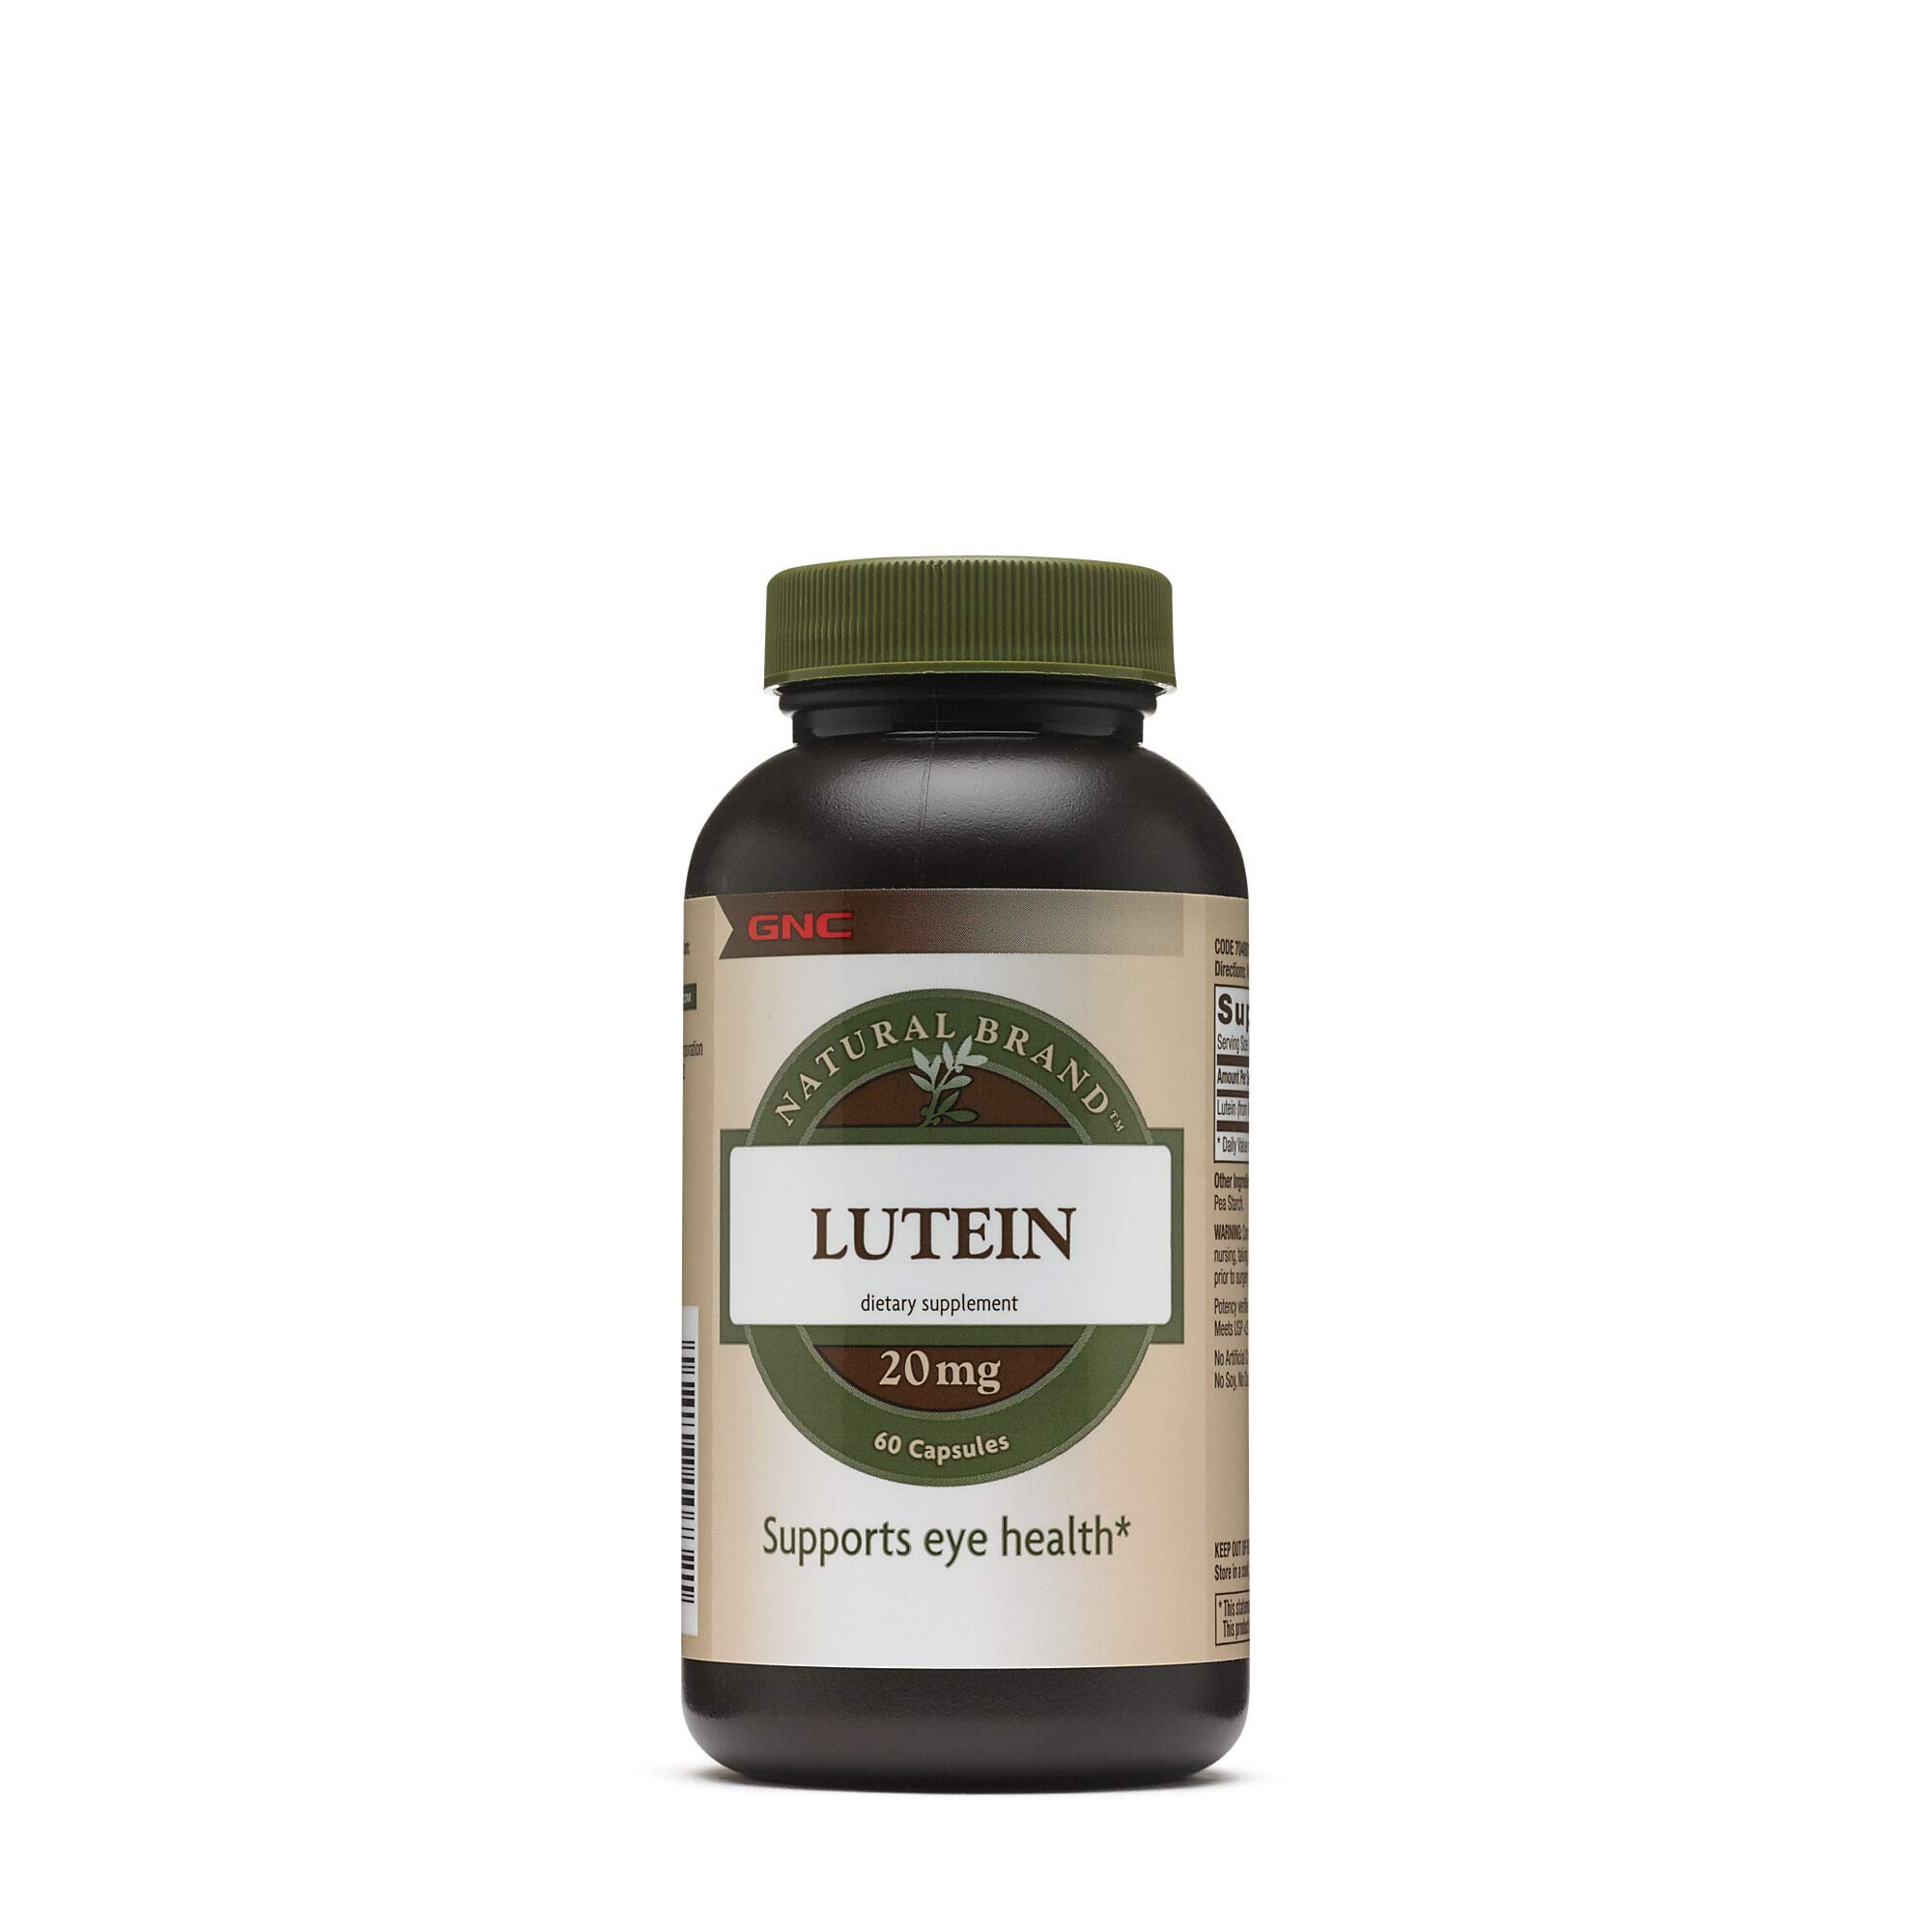 Gnc Natural Brand Lutein 20 Mg Capsules, 60 Count by GNC